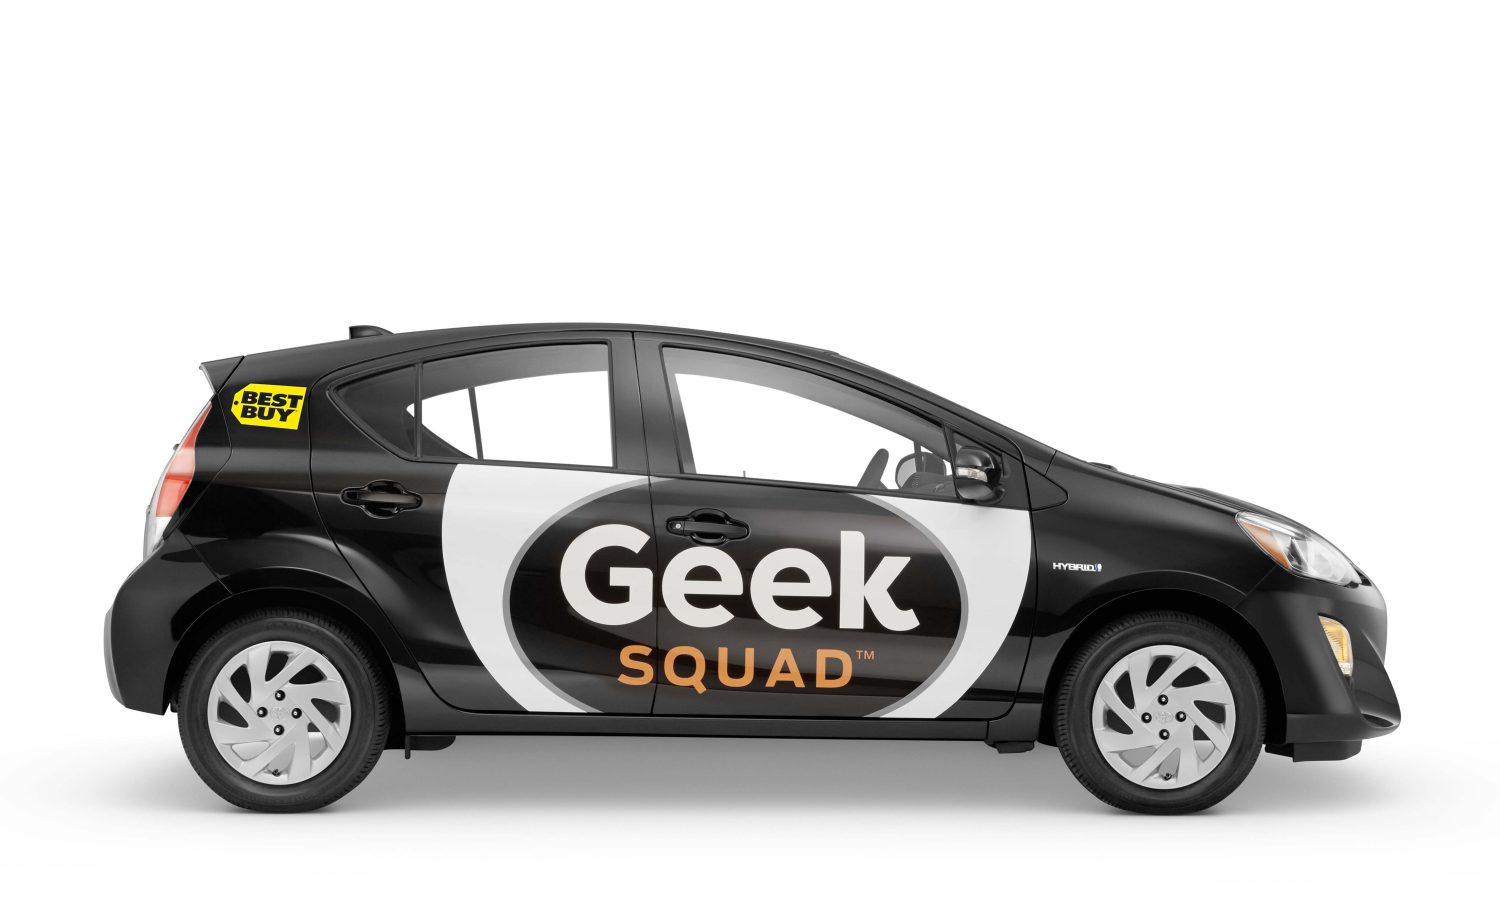 Vehicle of Choice for Geeks? Toyota Prius c